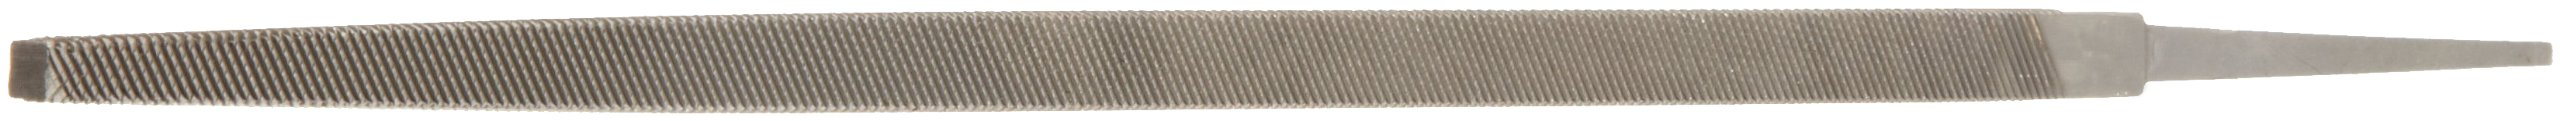 Nicholson Hand File, American Pattern, Double Cut, Square, Coarse, 10'' Length by Apex Tool Group